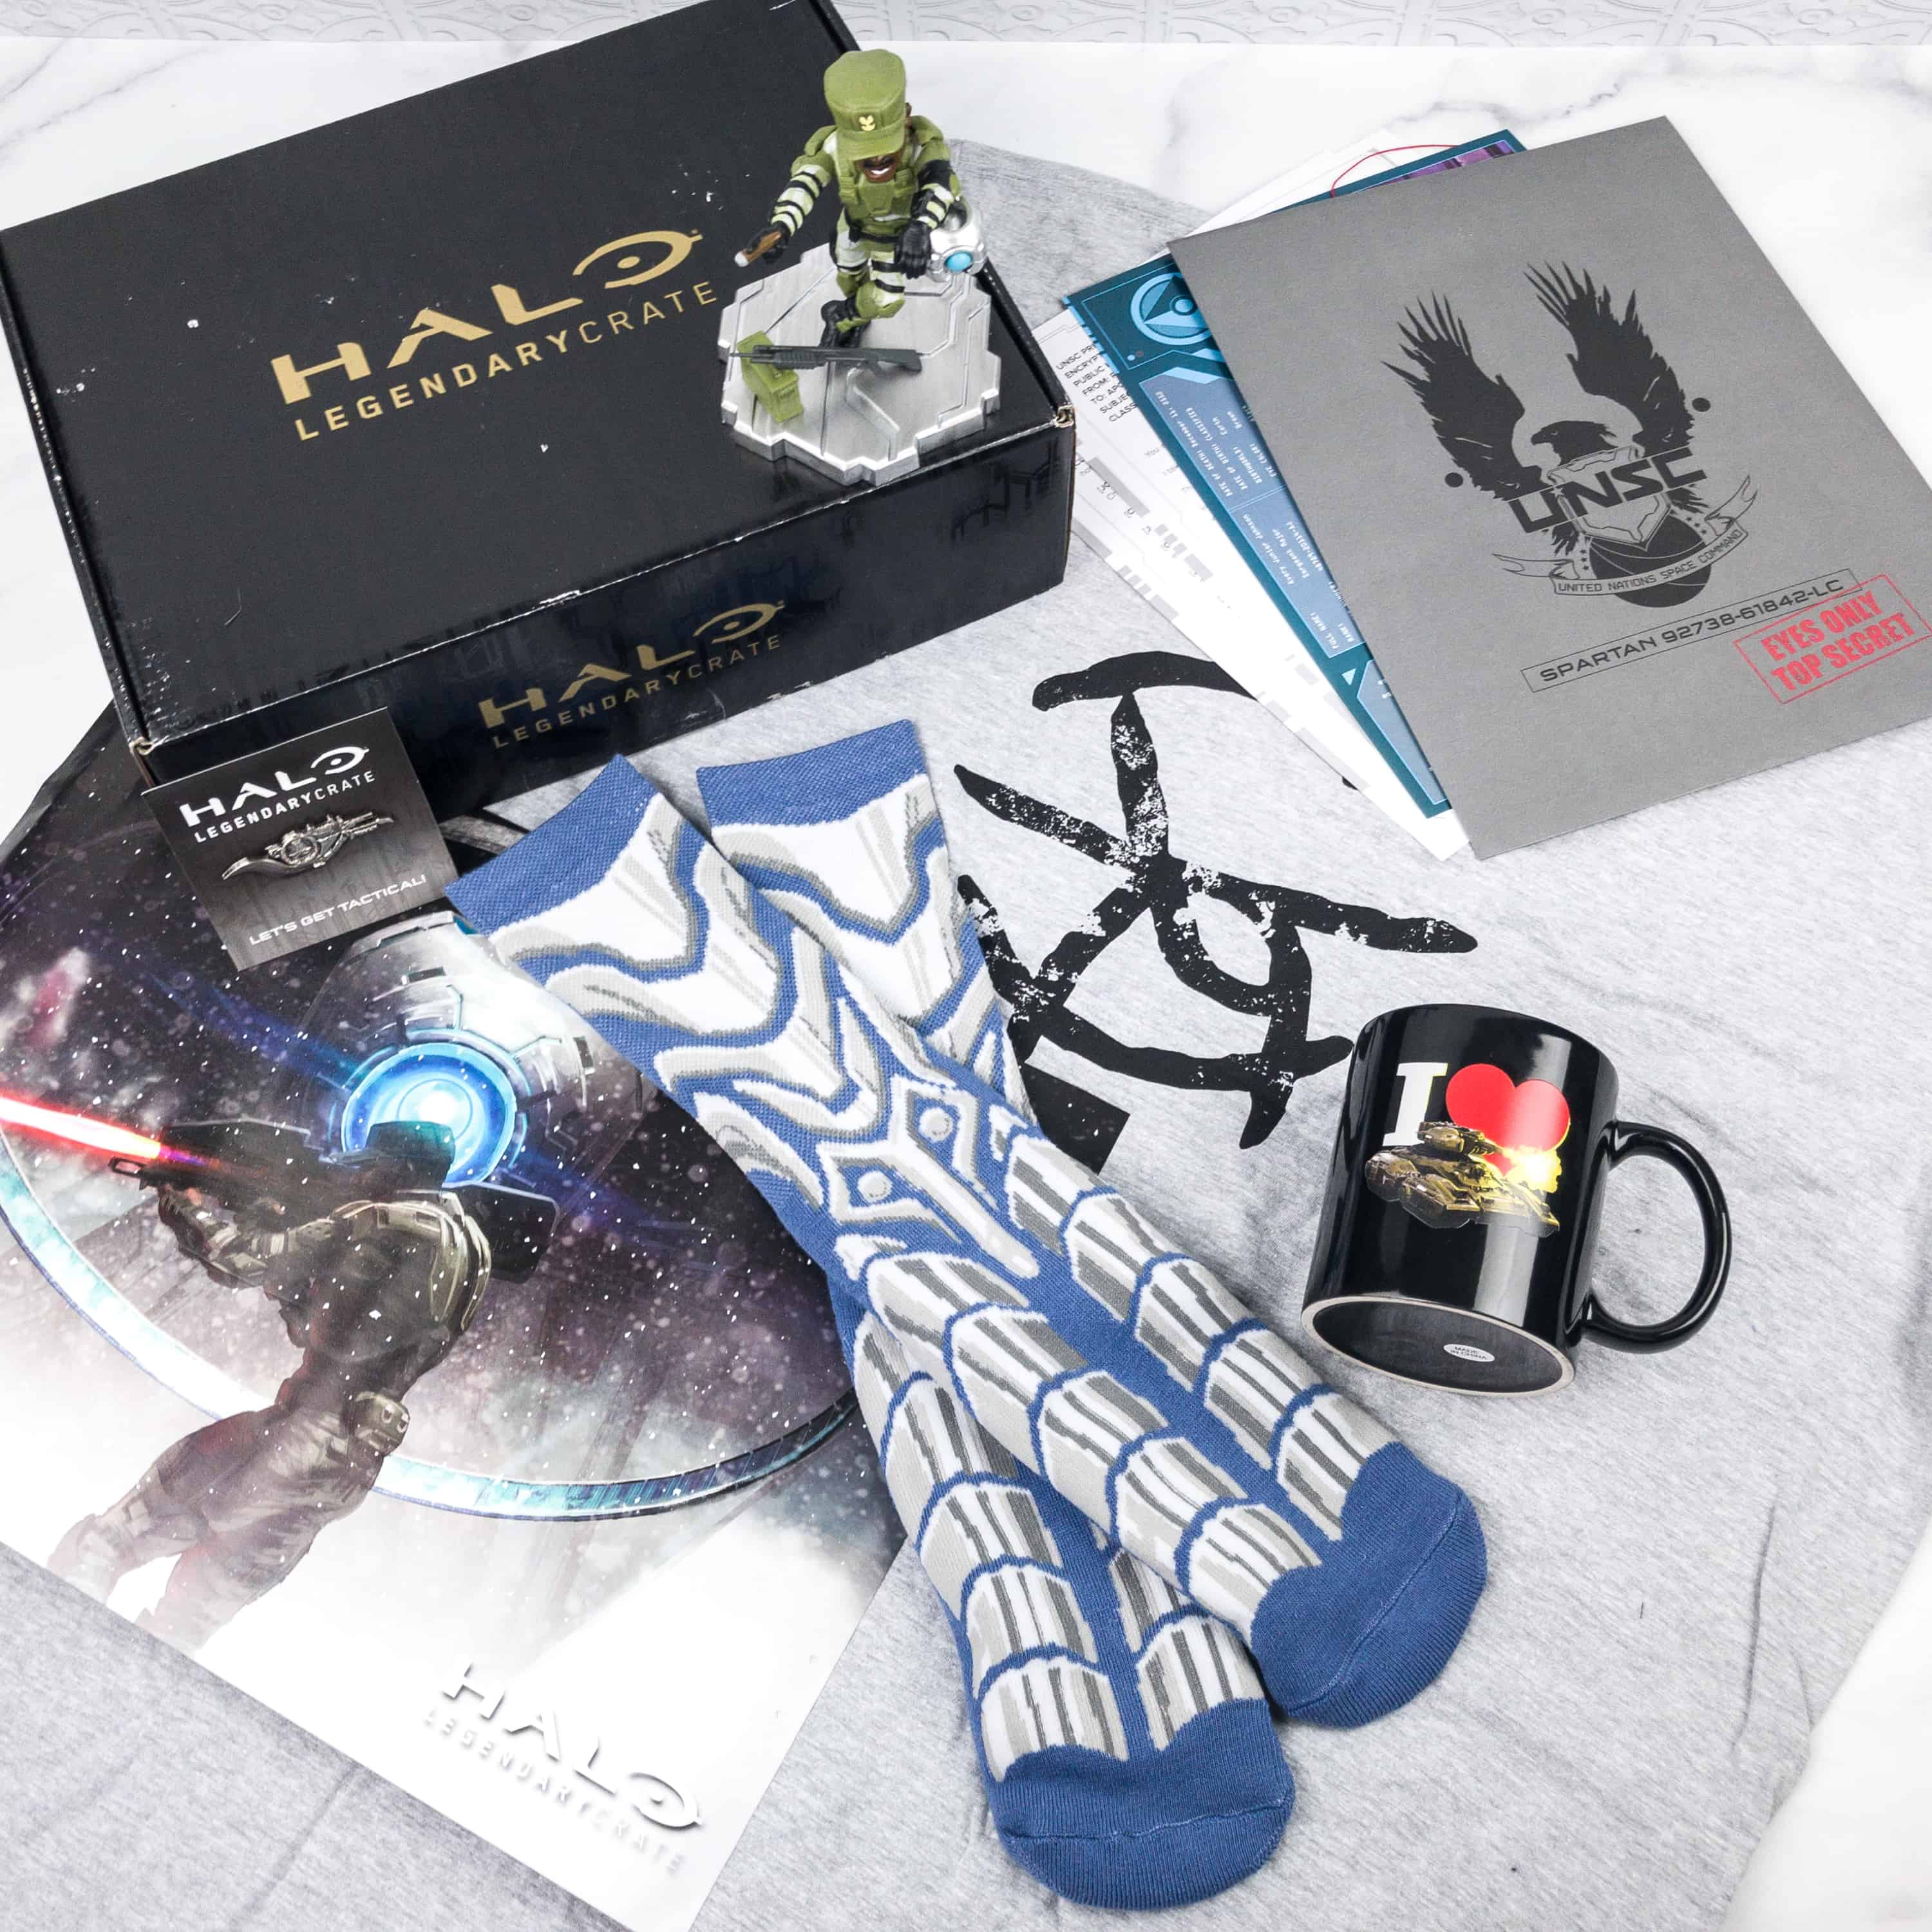 Halo Legendary Crate February 2018 Subscription Box Review + Coupon